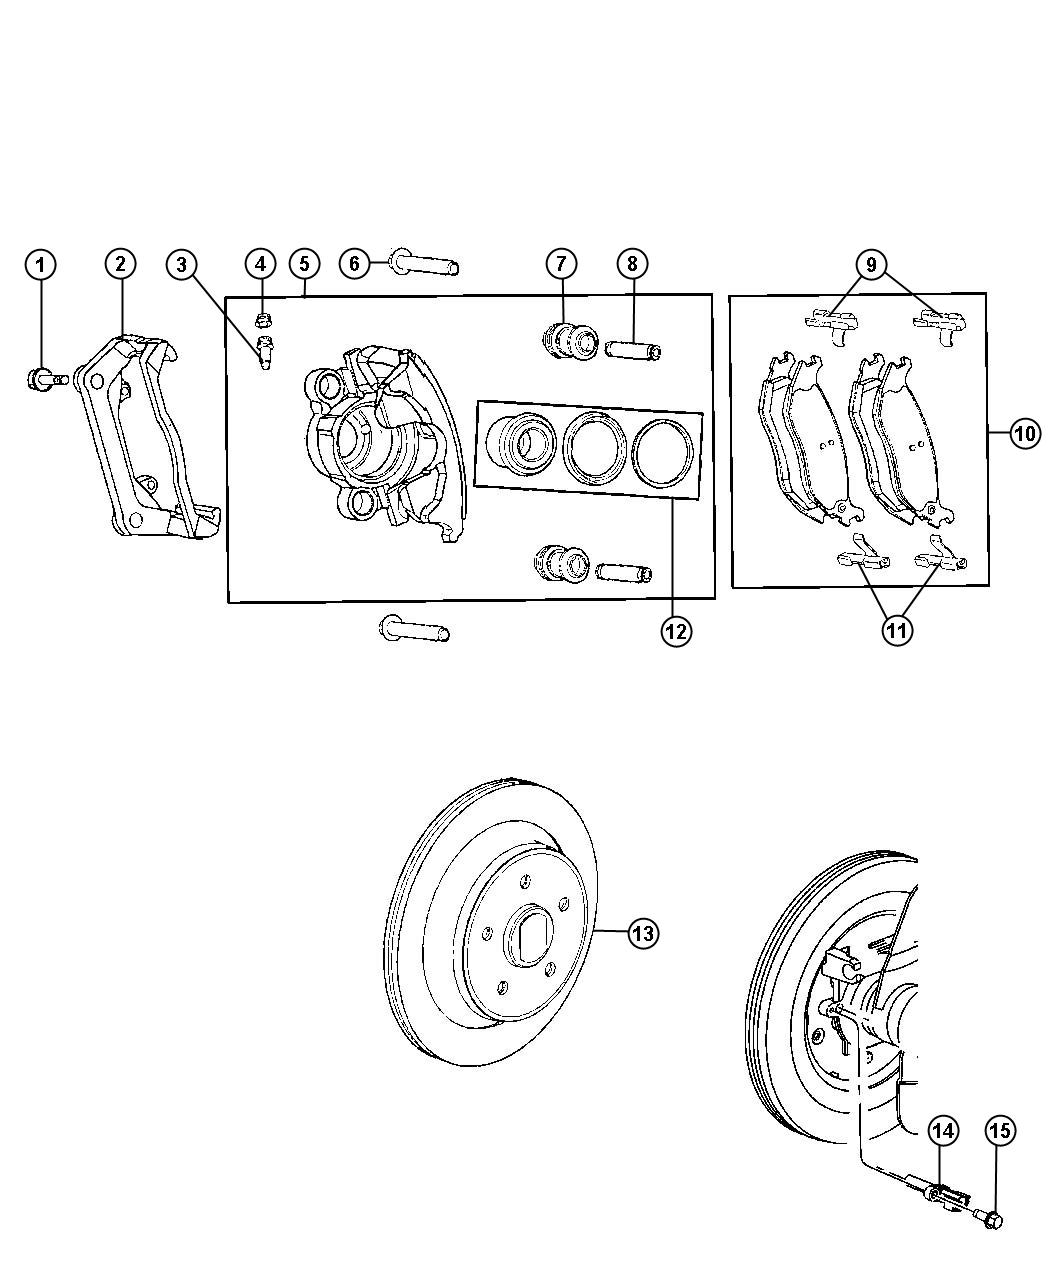 Coolant sensors also Geo Metro Car Cover in addition How To Remove The Rack And Pinion For A 1996 Geo Metro additionally 1992 Geo Storm Driver Door Latch Repair Diagram together with 8 Cylinder Ohv Engine Diagram. on used geo metro car